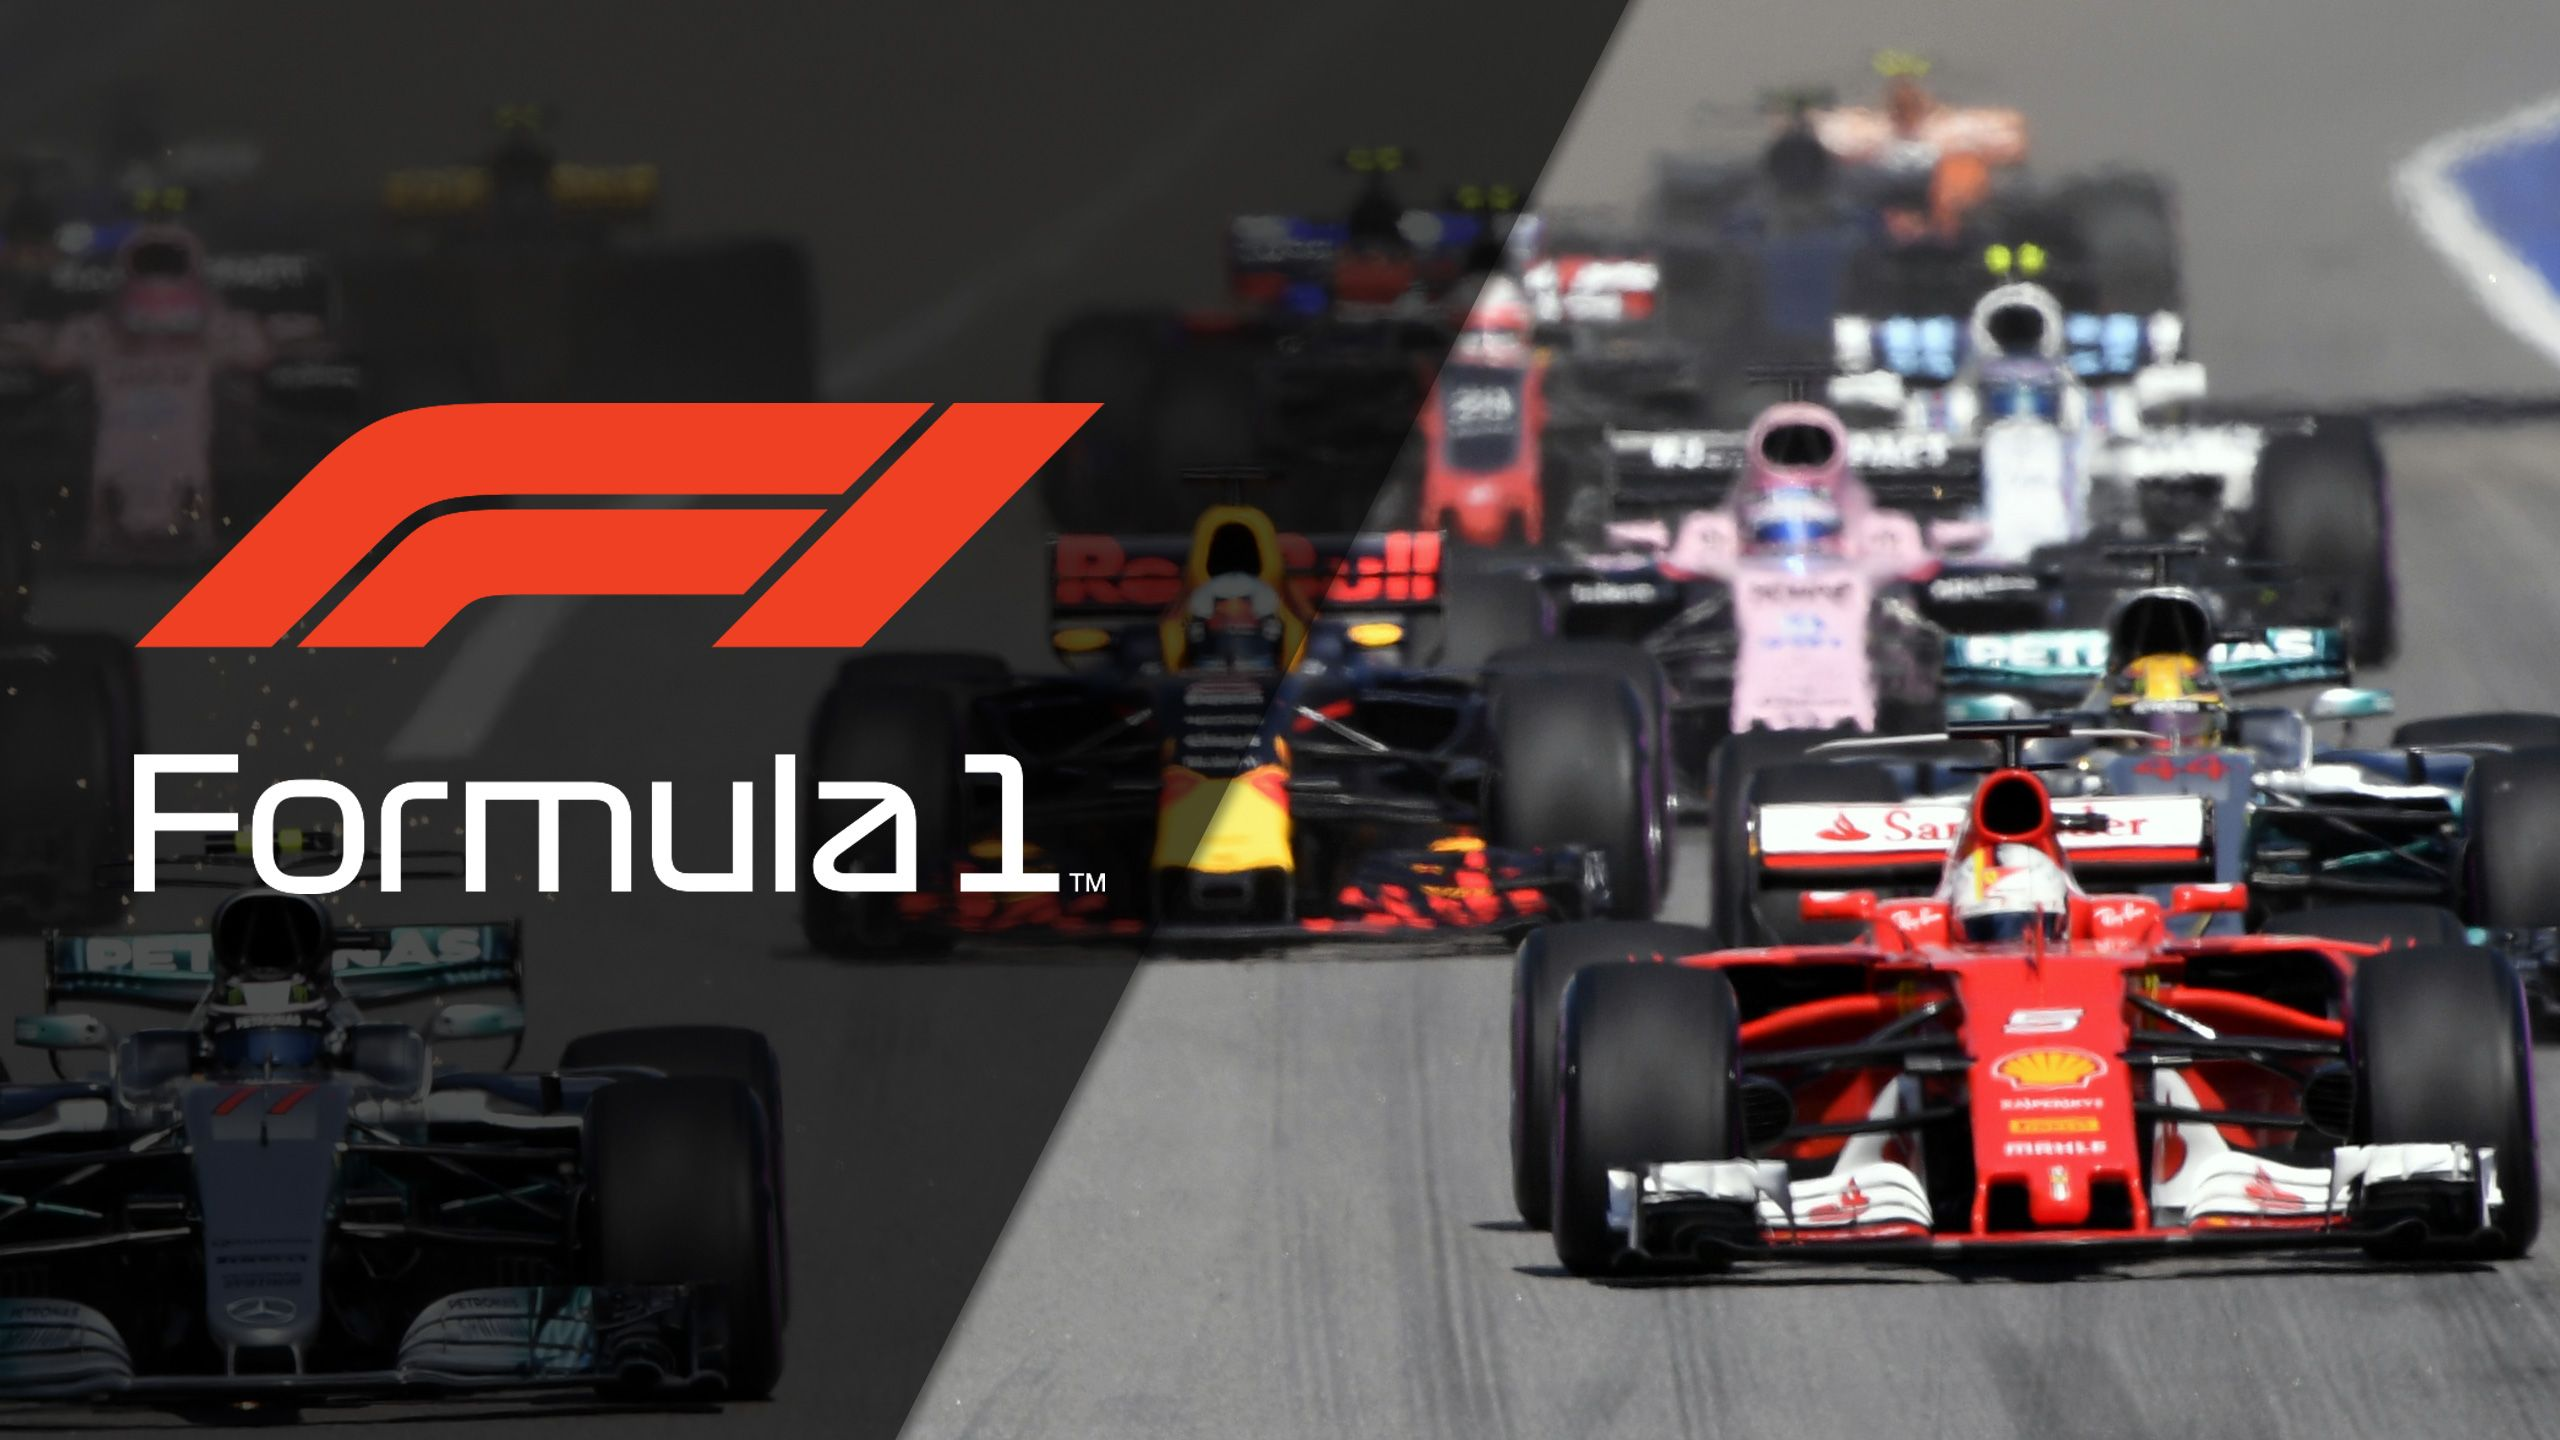 Formula 1 Emirates German Grand Prix coverage presented by Mothers Polish